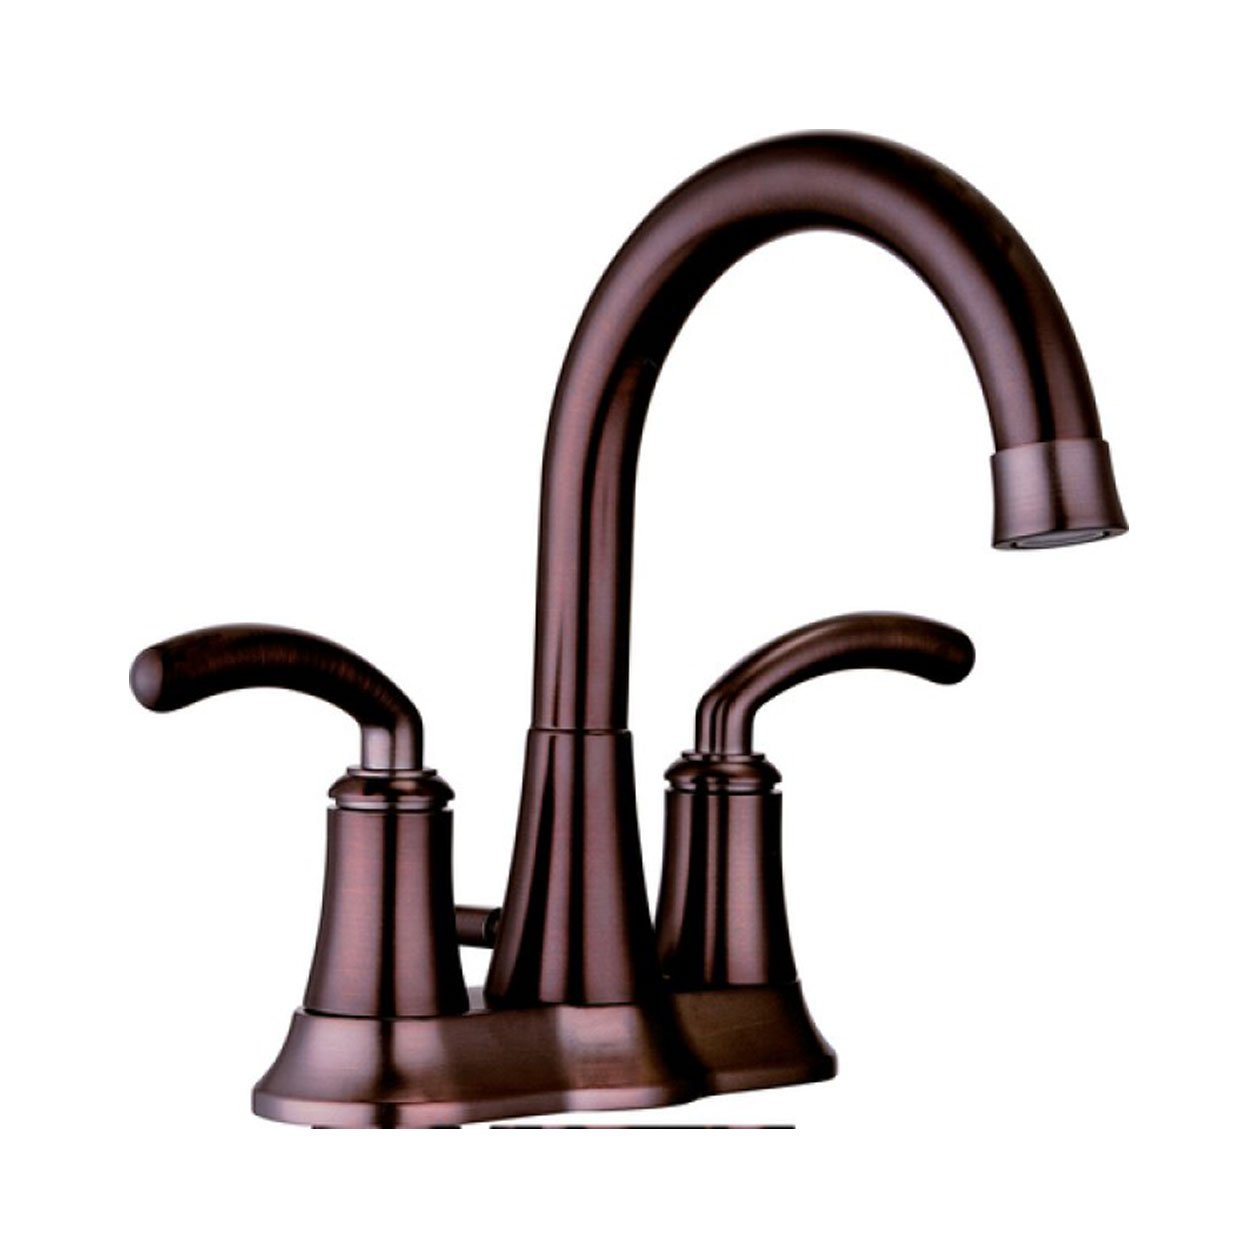 Yosemite Home Decor YP5704-ORB Two Handle Centerset Lavatory Faucet with Pop-up Drain, Oil Rubbed Bronze